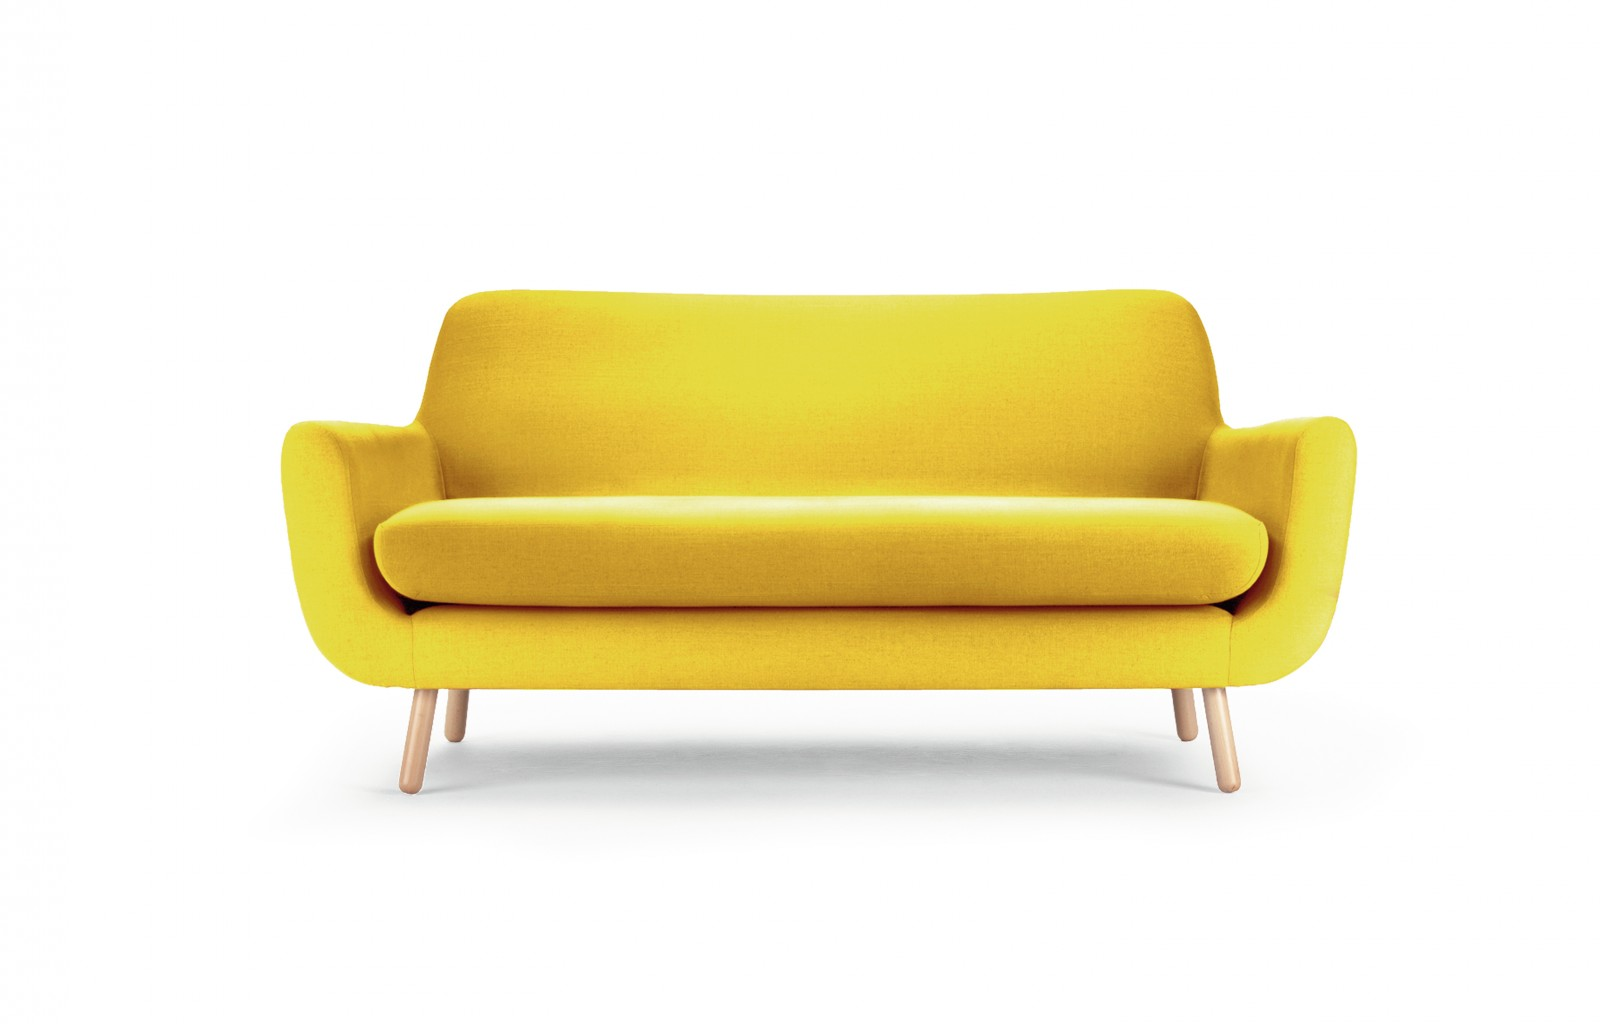 Lovely Yellow Sofa 96 Contemporary Sofa Inspiration with Yellow Sofa